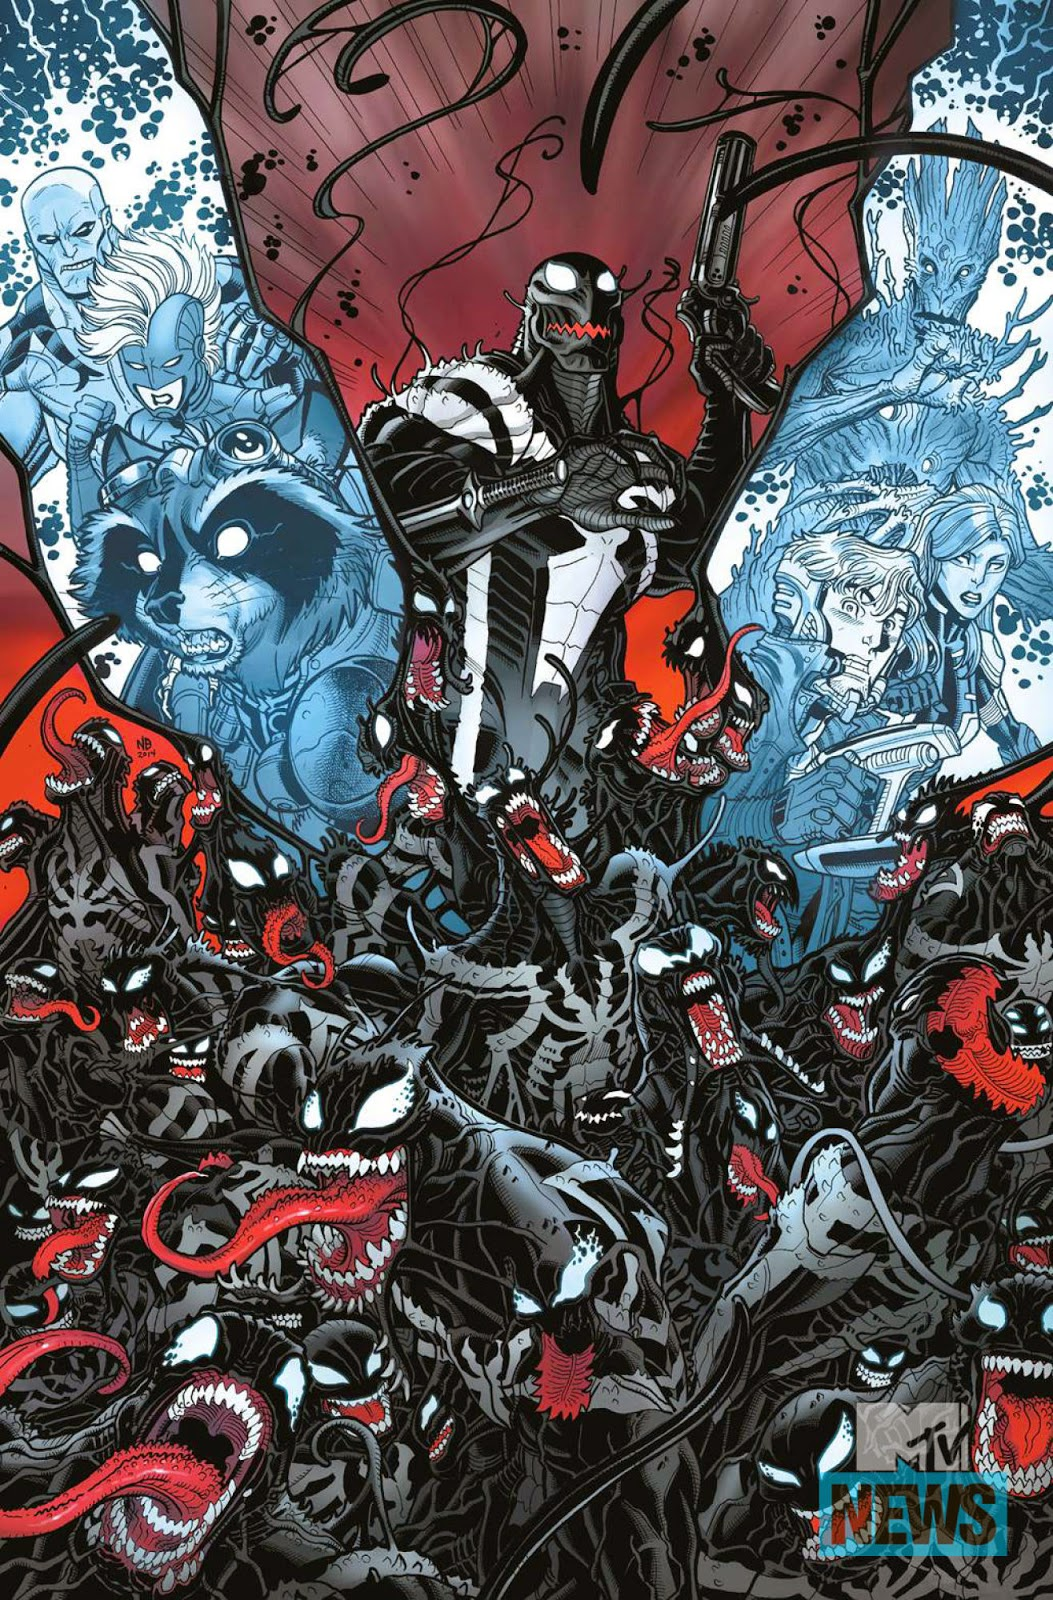 Discover the symbiote homeworld in Guardians of the Galaxy: Planet of the Symbiotes